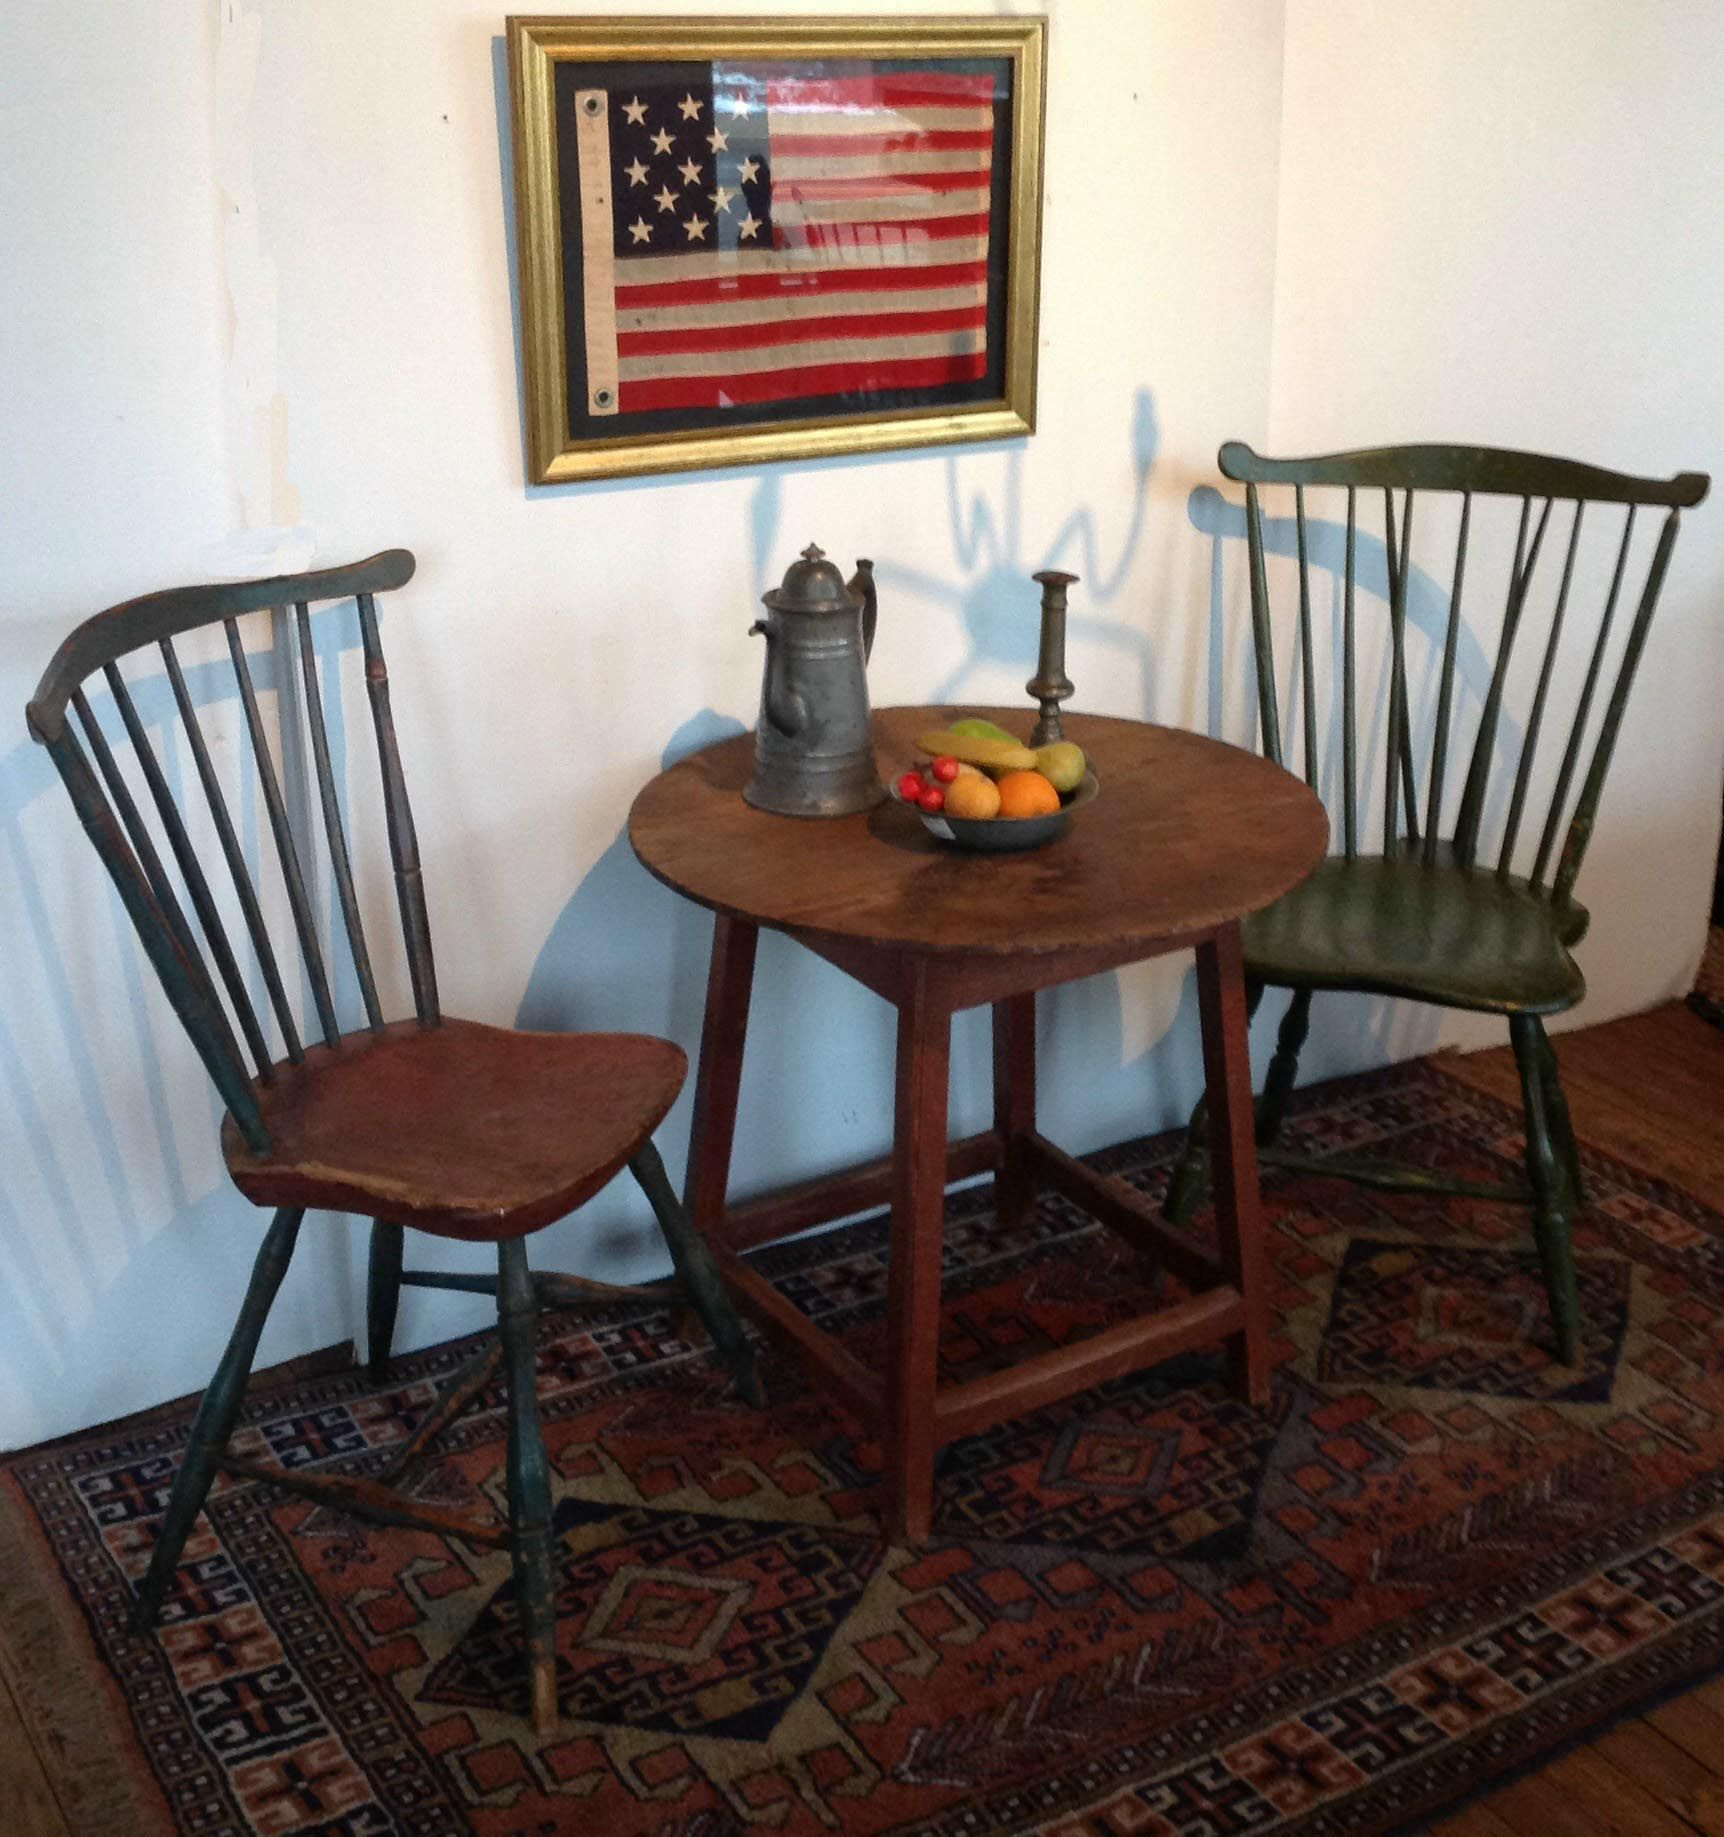 18th century Tavern Table with two Windsor chairs and 13 star flag & 18th century Tavern Table with two Windsor chairs and 13 star flag ...